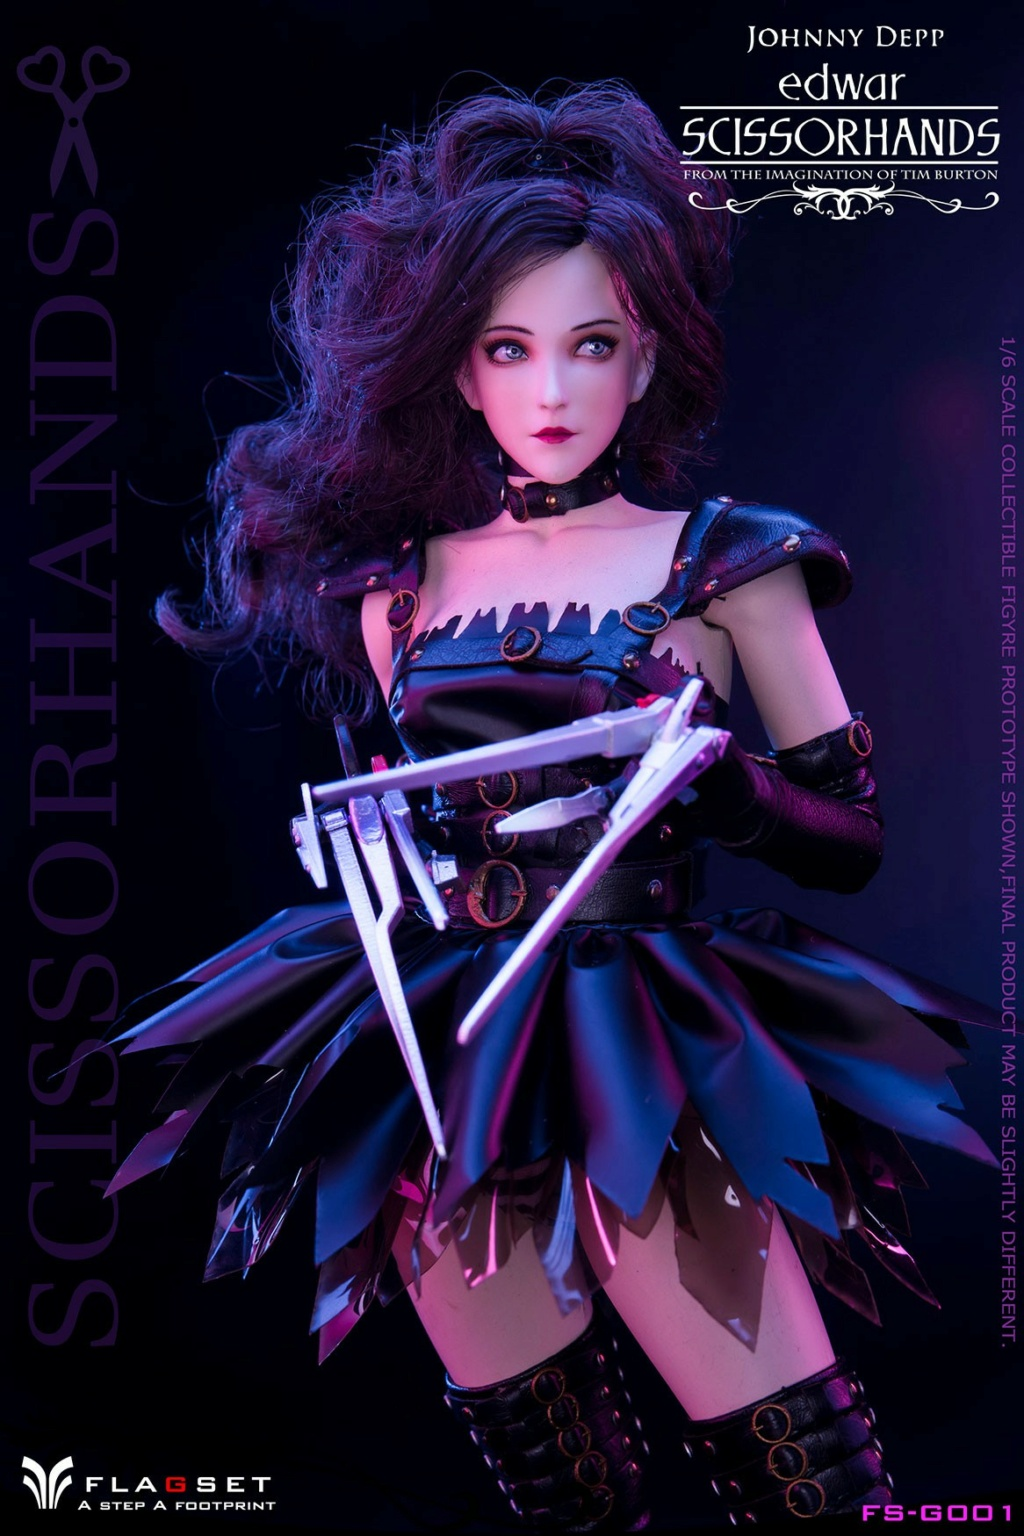 Stylized - NEW PRODUCT: Flagset: 1/6 Edwar Scissorhands (FS-G001#) (NOT A MISSPELLING, AND NOT WHAT YOU THINK) 23522010